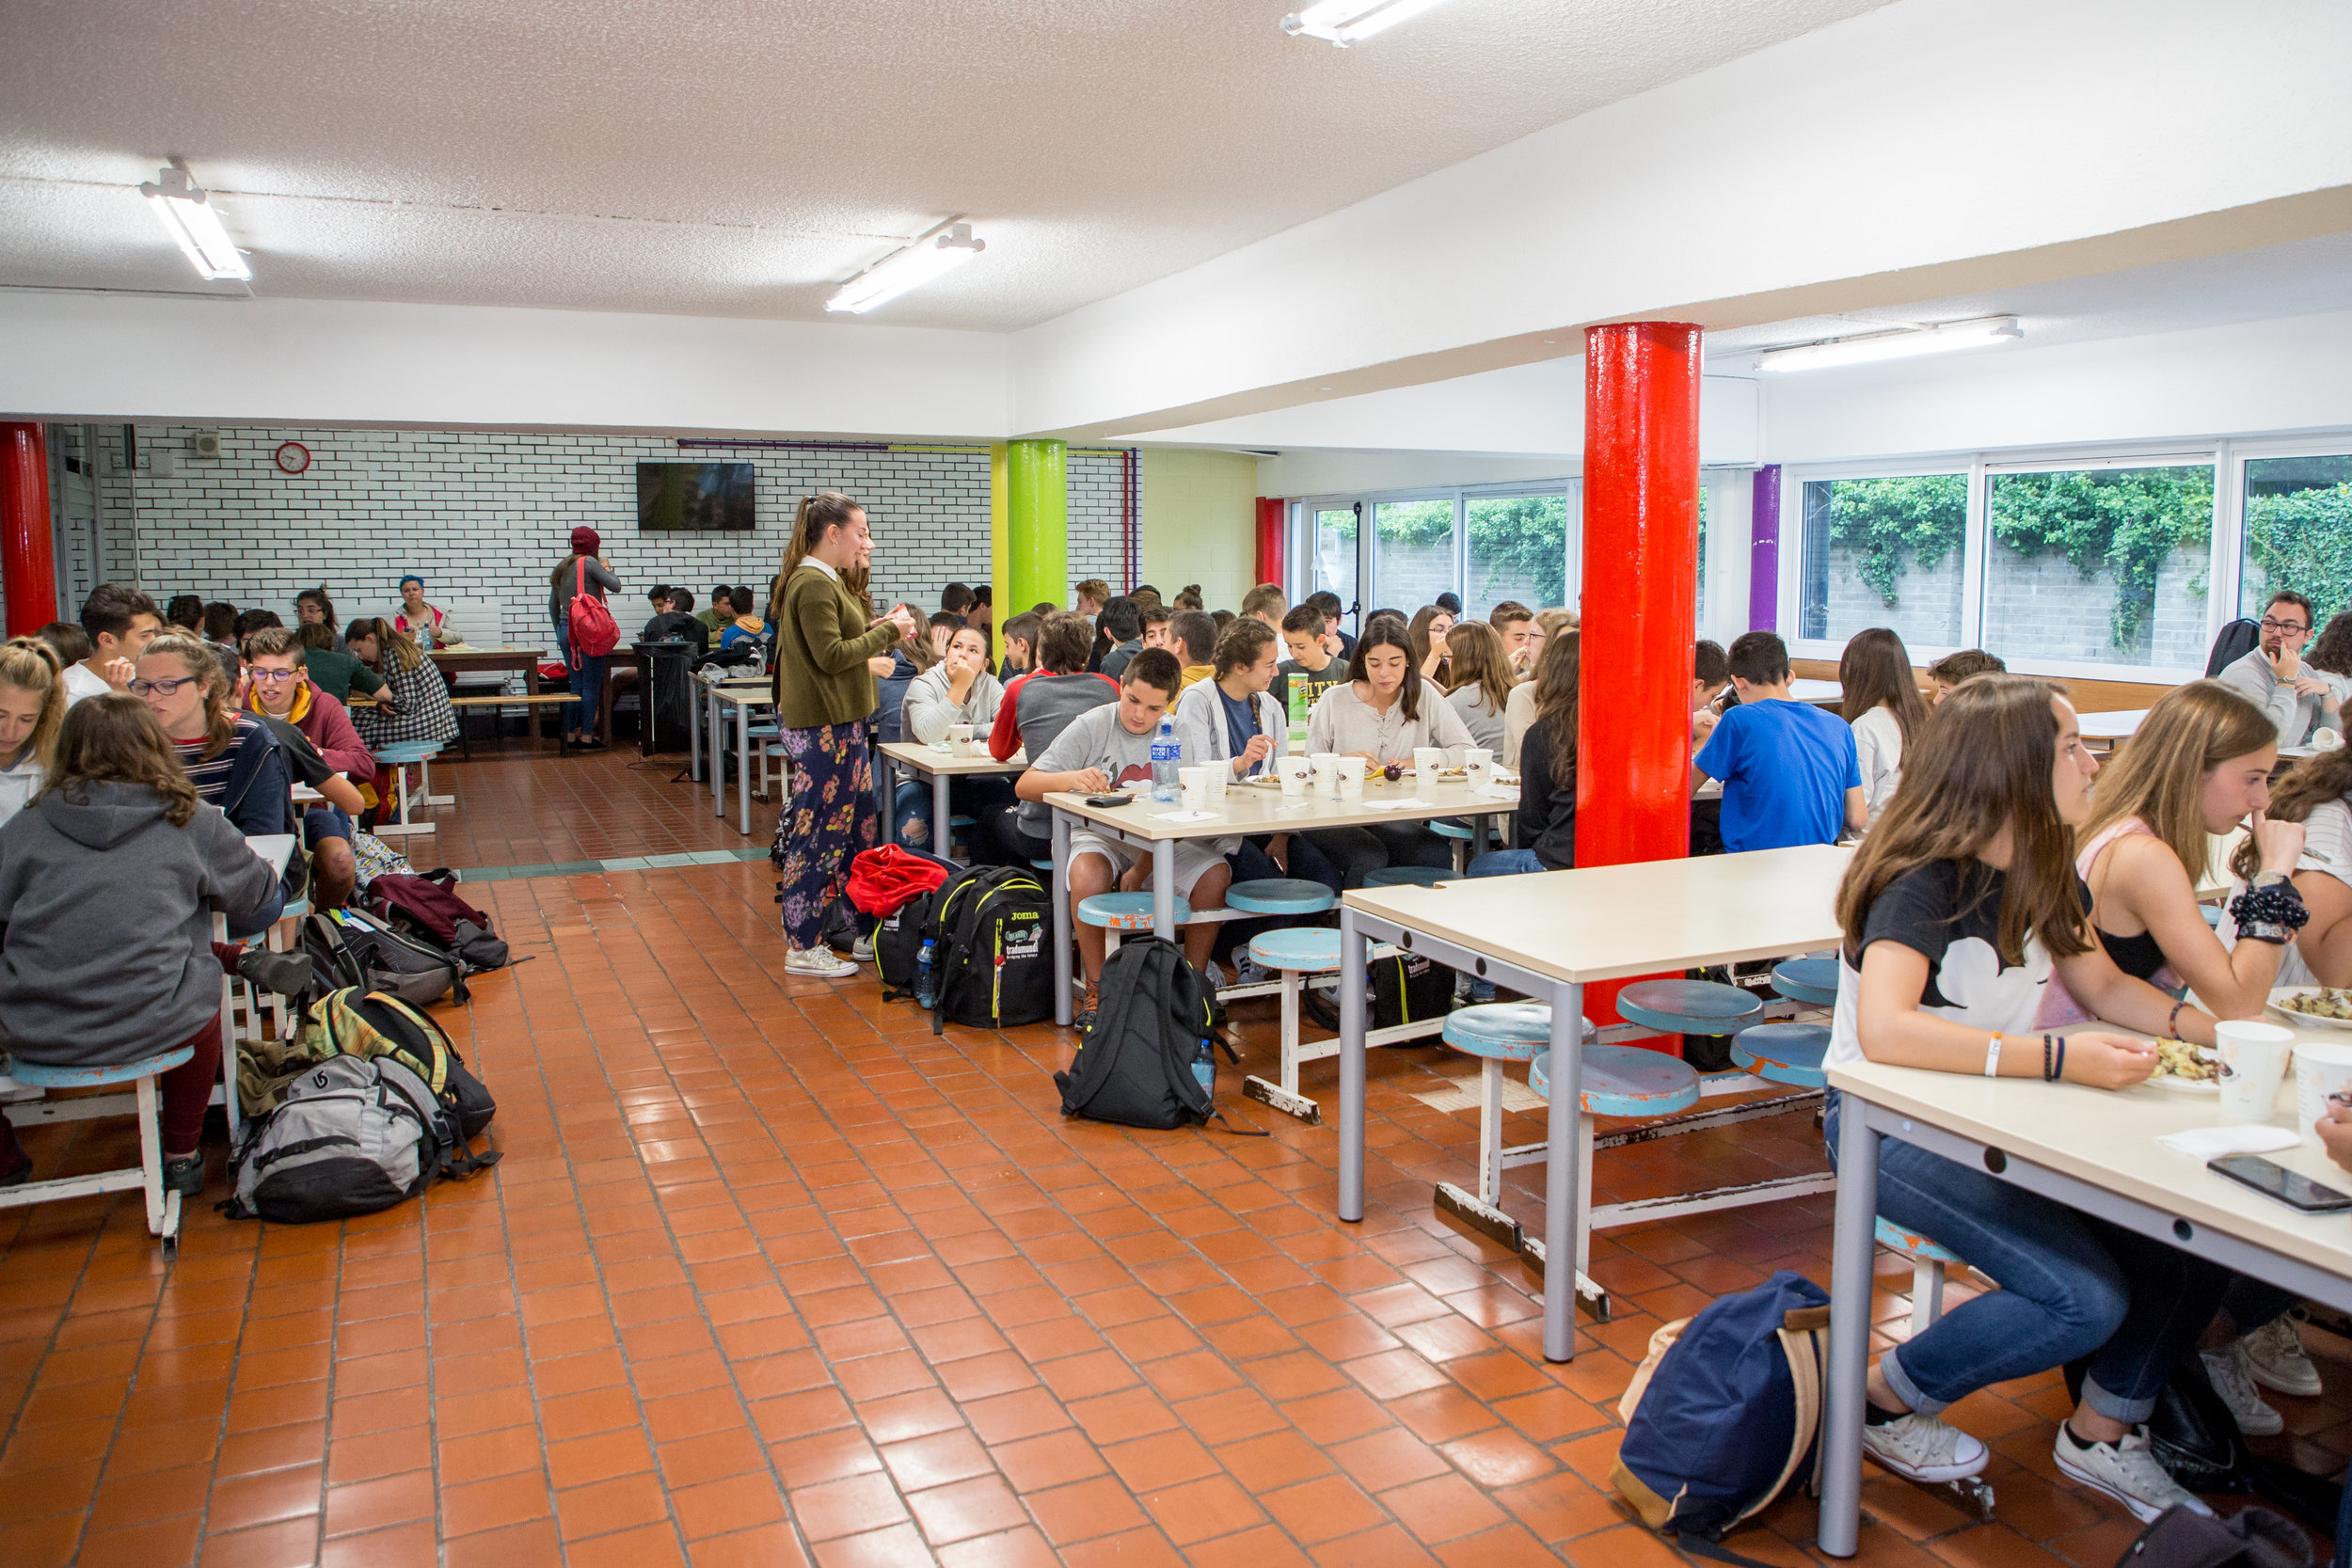 summer-school-canteen.jpg